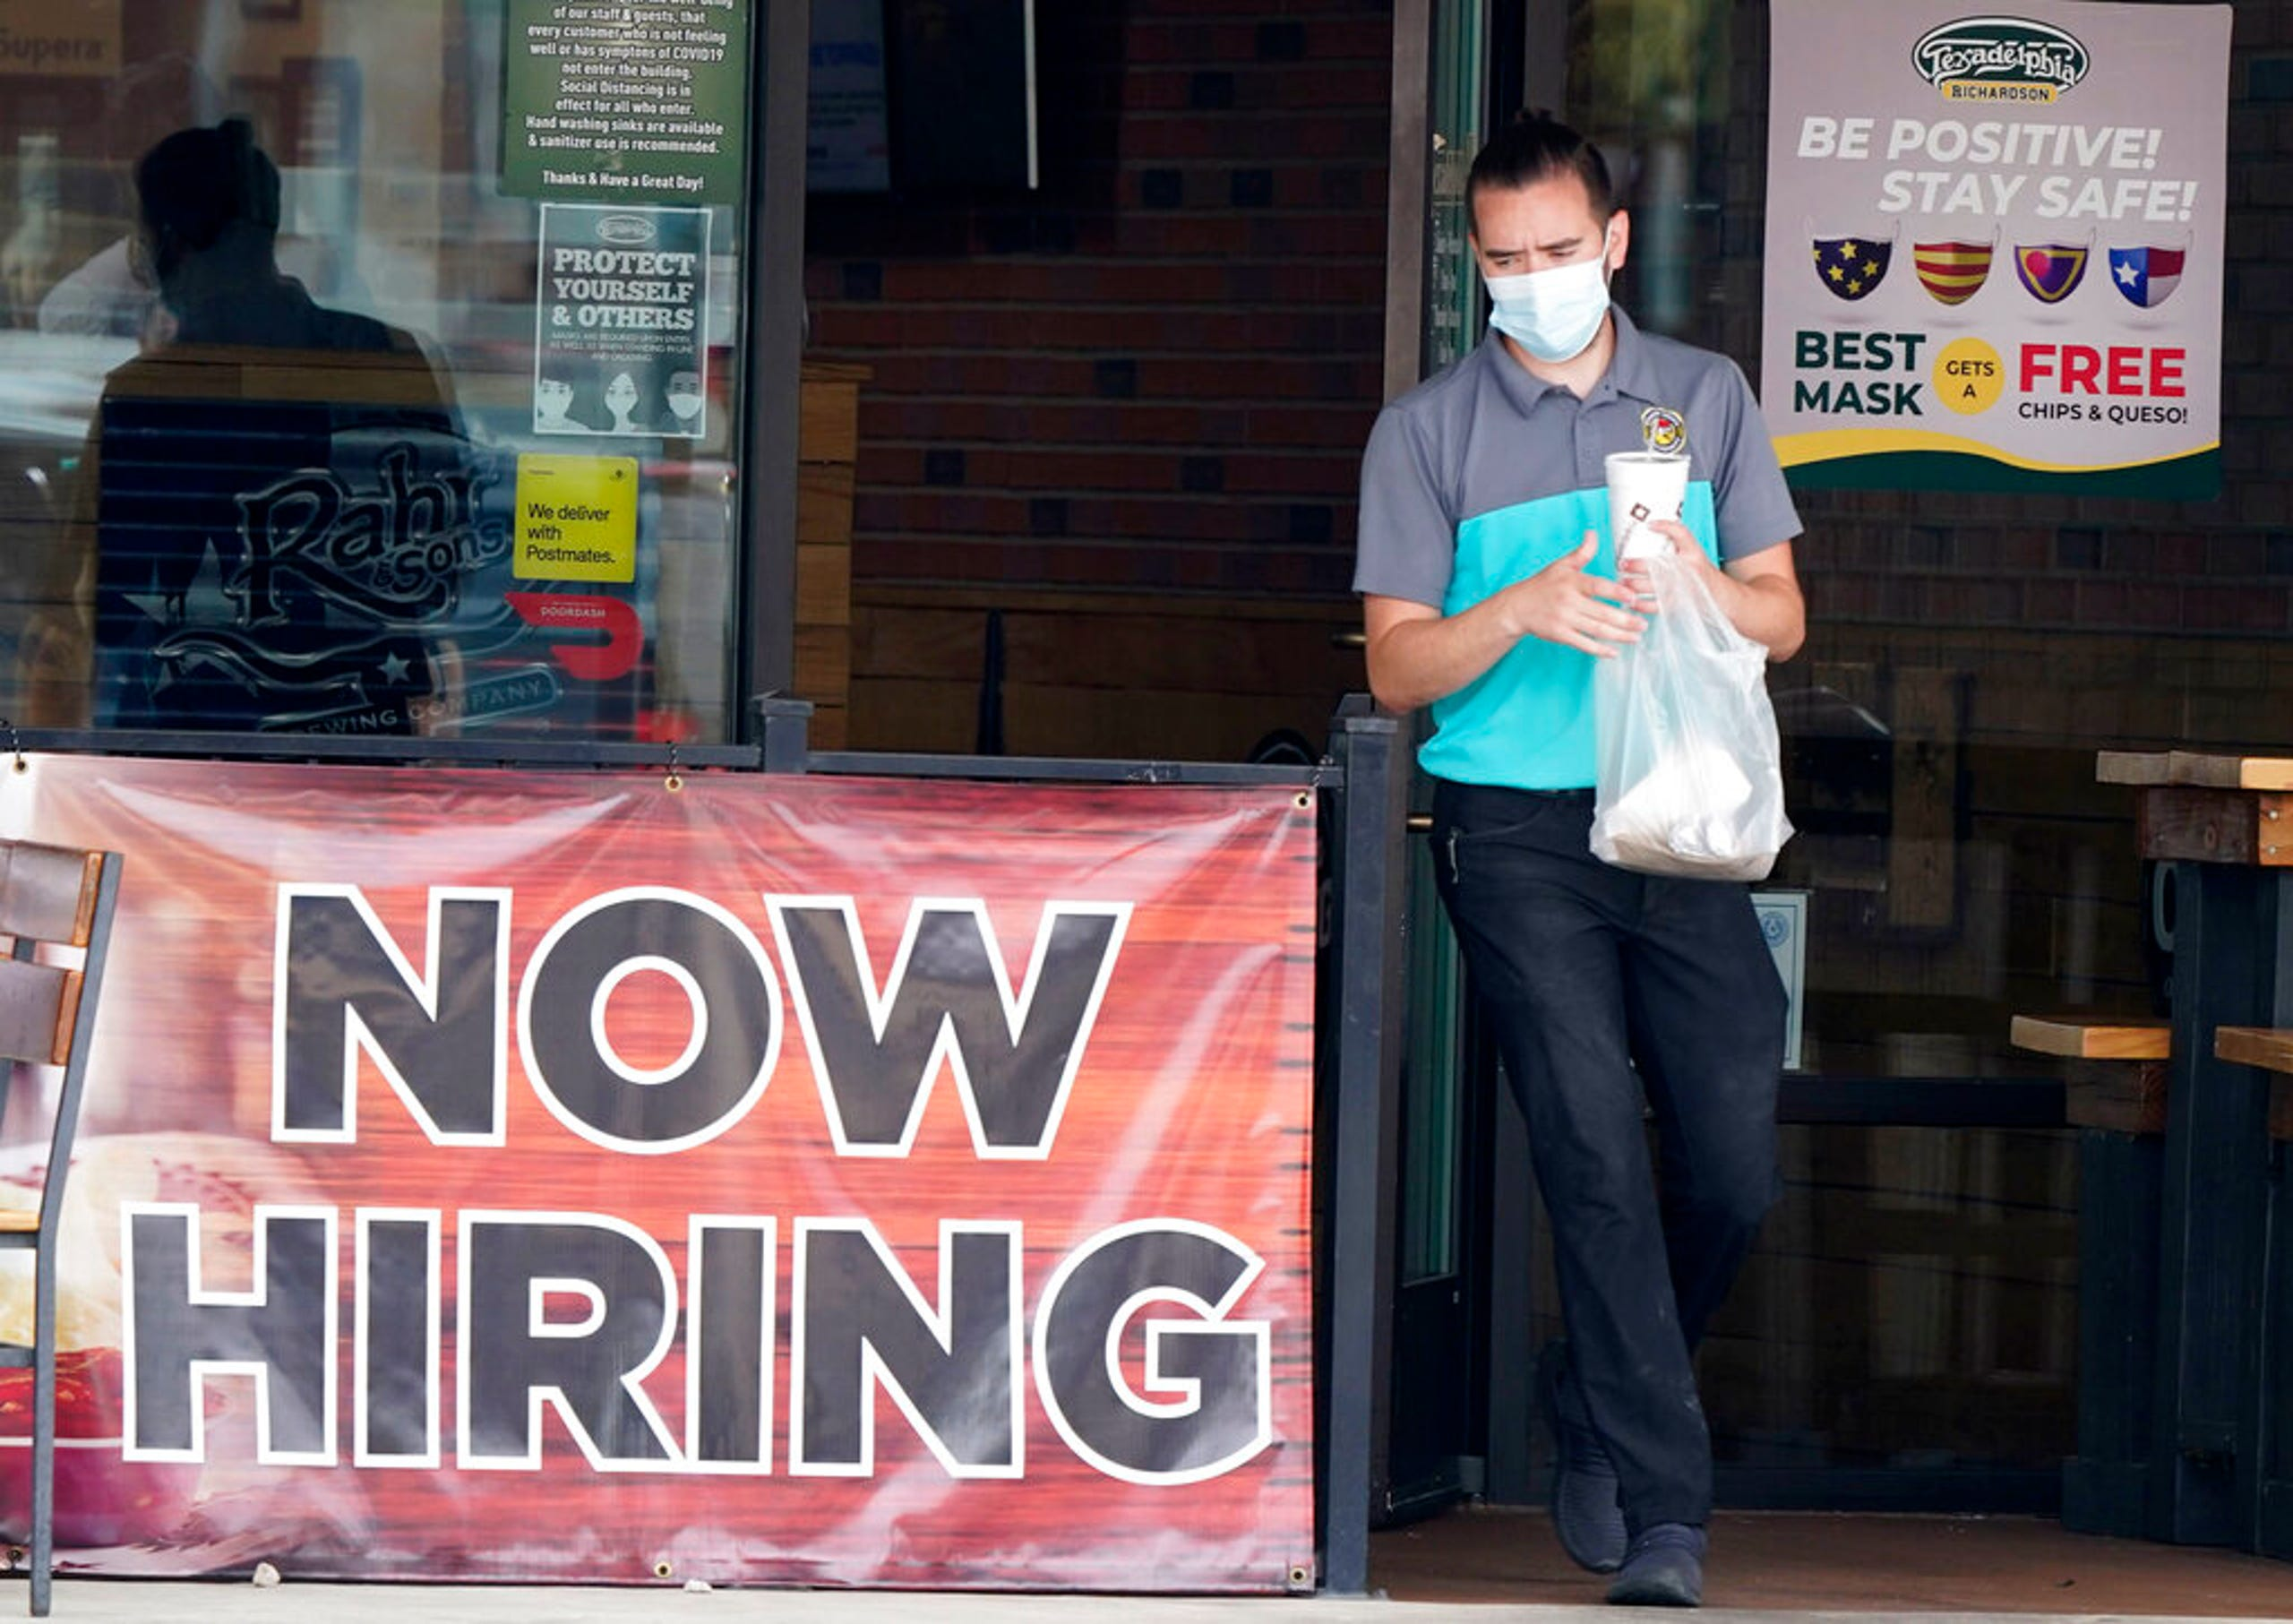 In this Sept. 2, 2020 file photo, a customer wears a face mask as they carry their order past a now hiring sign at an eatery in Richardson, Texas.